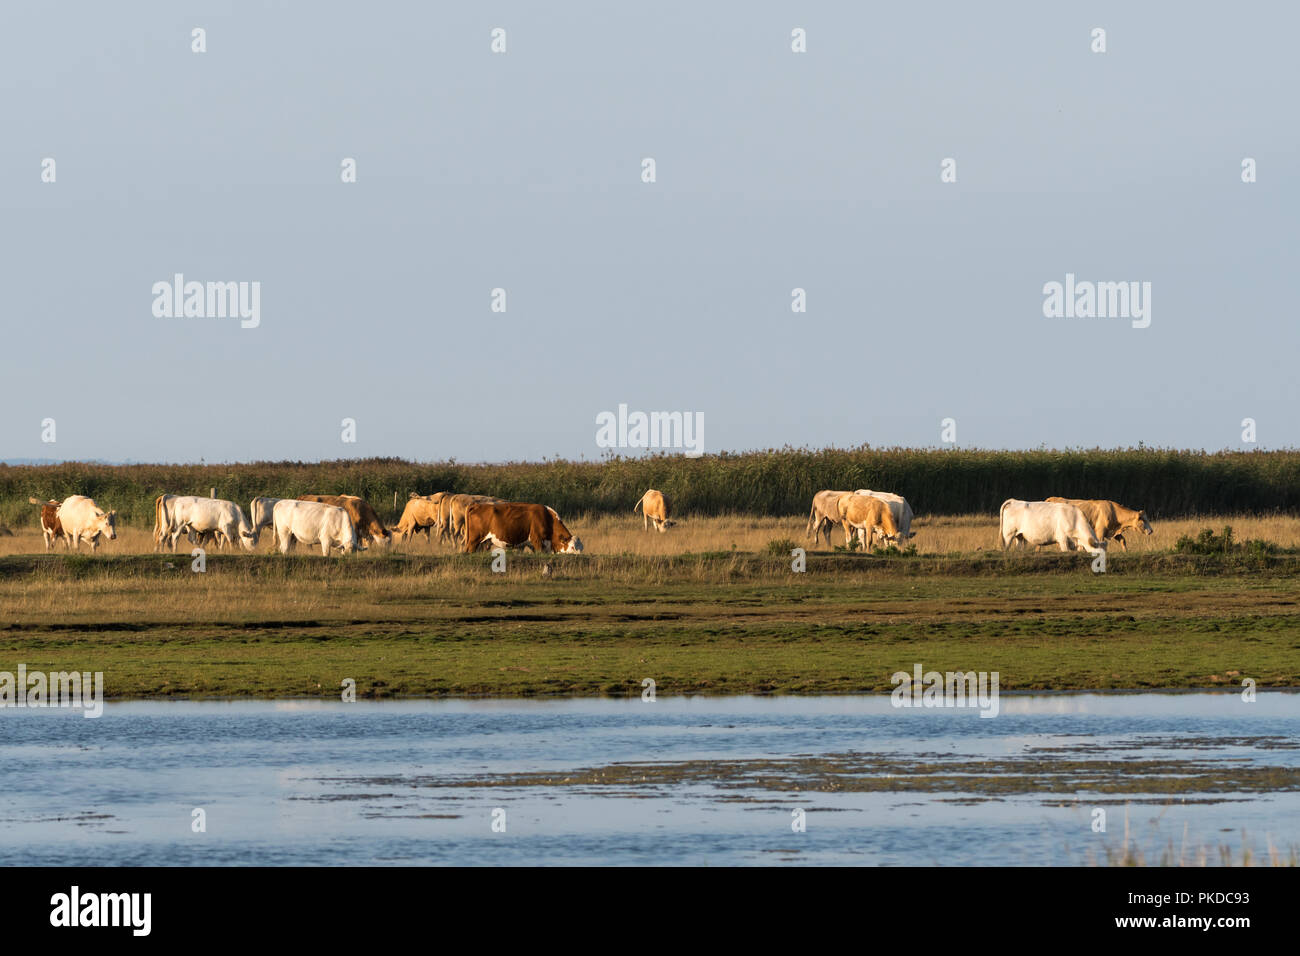 Herd of grazing cattle in a wetland at the swedish island Oland - Stock Image